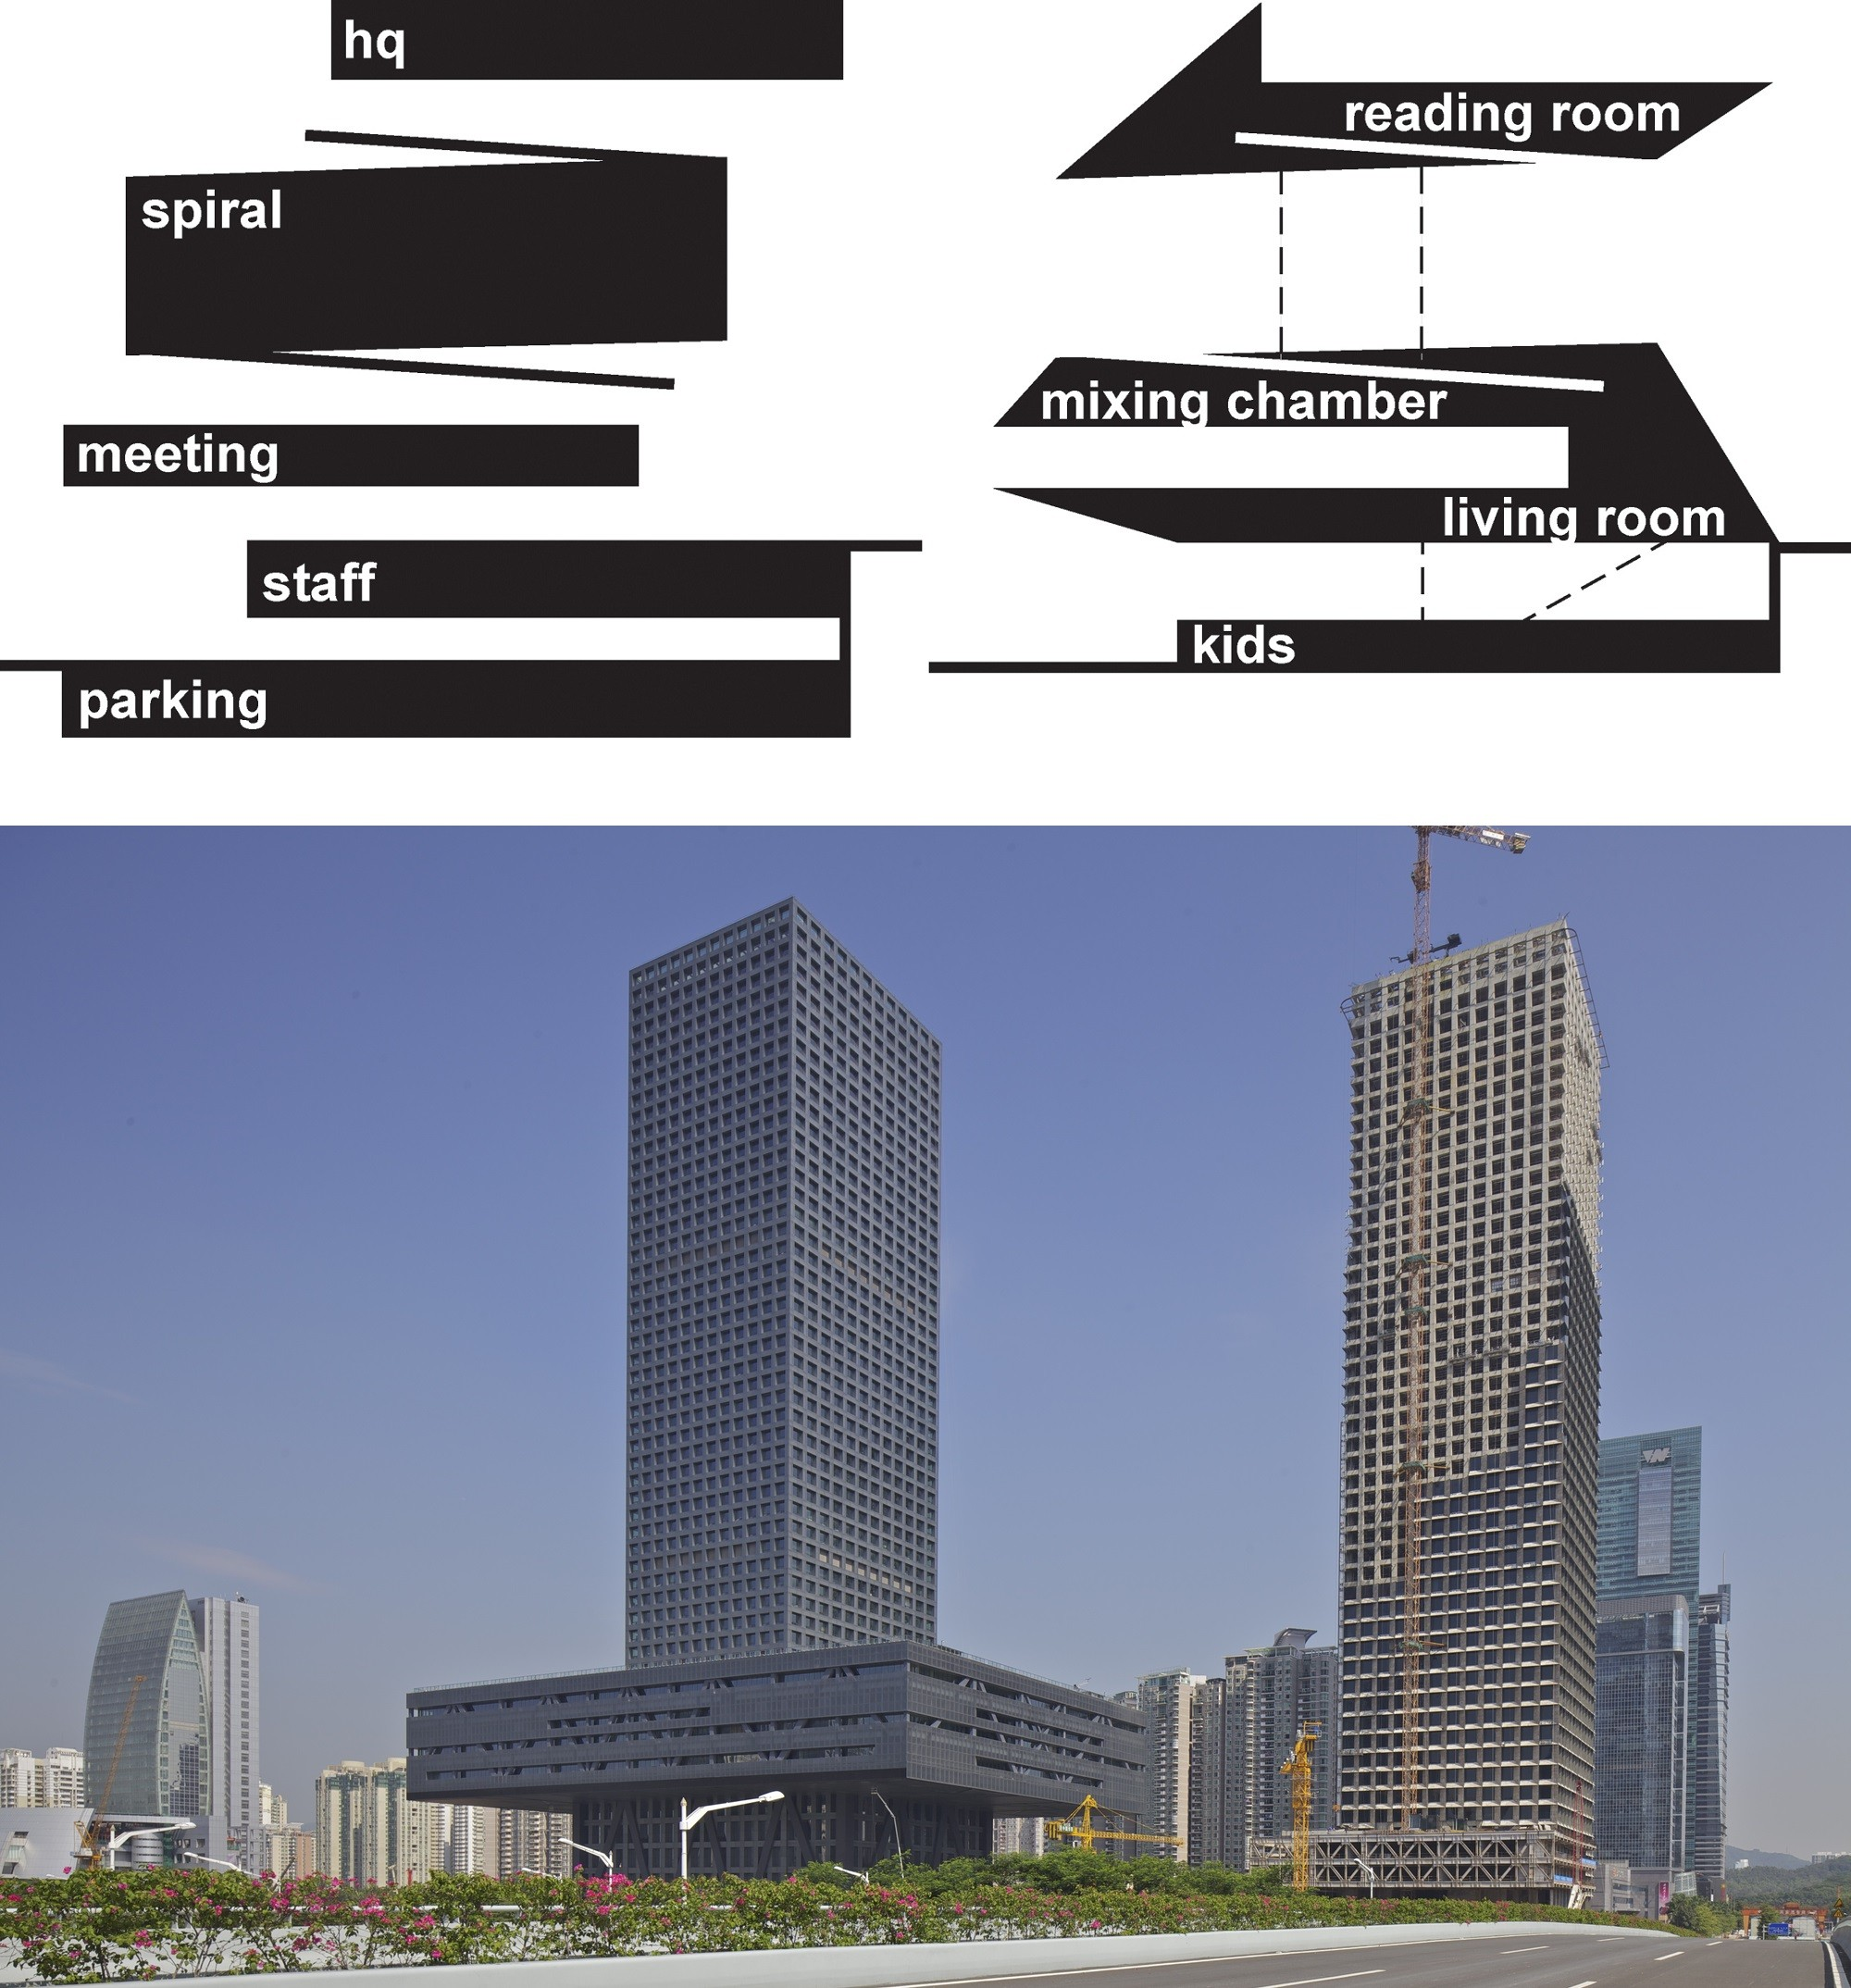 Above, diagrams outlining the layout of OMA's Seattle Central Library, and below the Shenzhen Stock Exchange. Image Courtesy of OMA and © Philippe Ruault